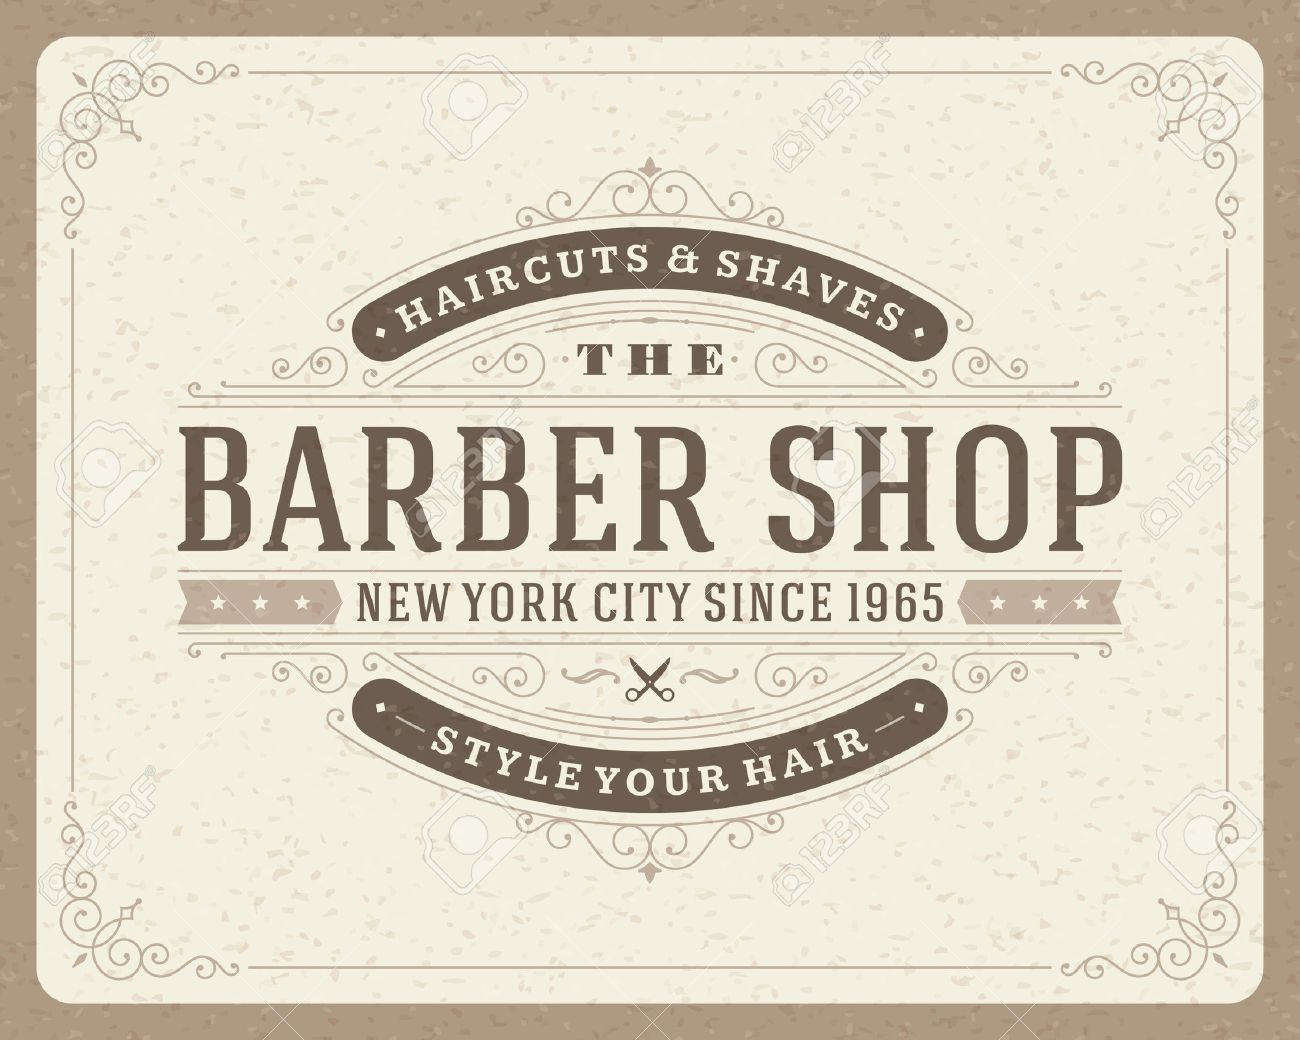 Antique barber shop sign - Barber Shop Barber Shop Vintage Retro Typographic Design Template